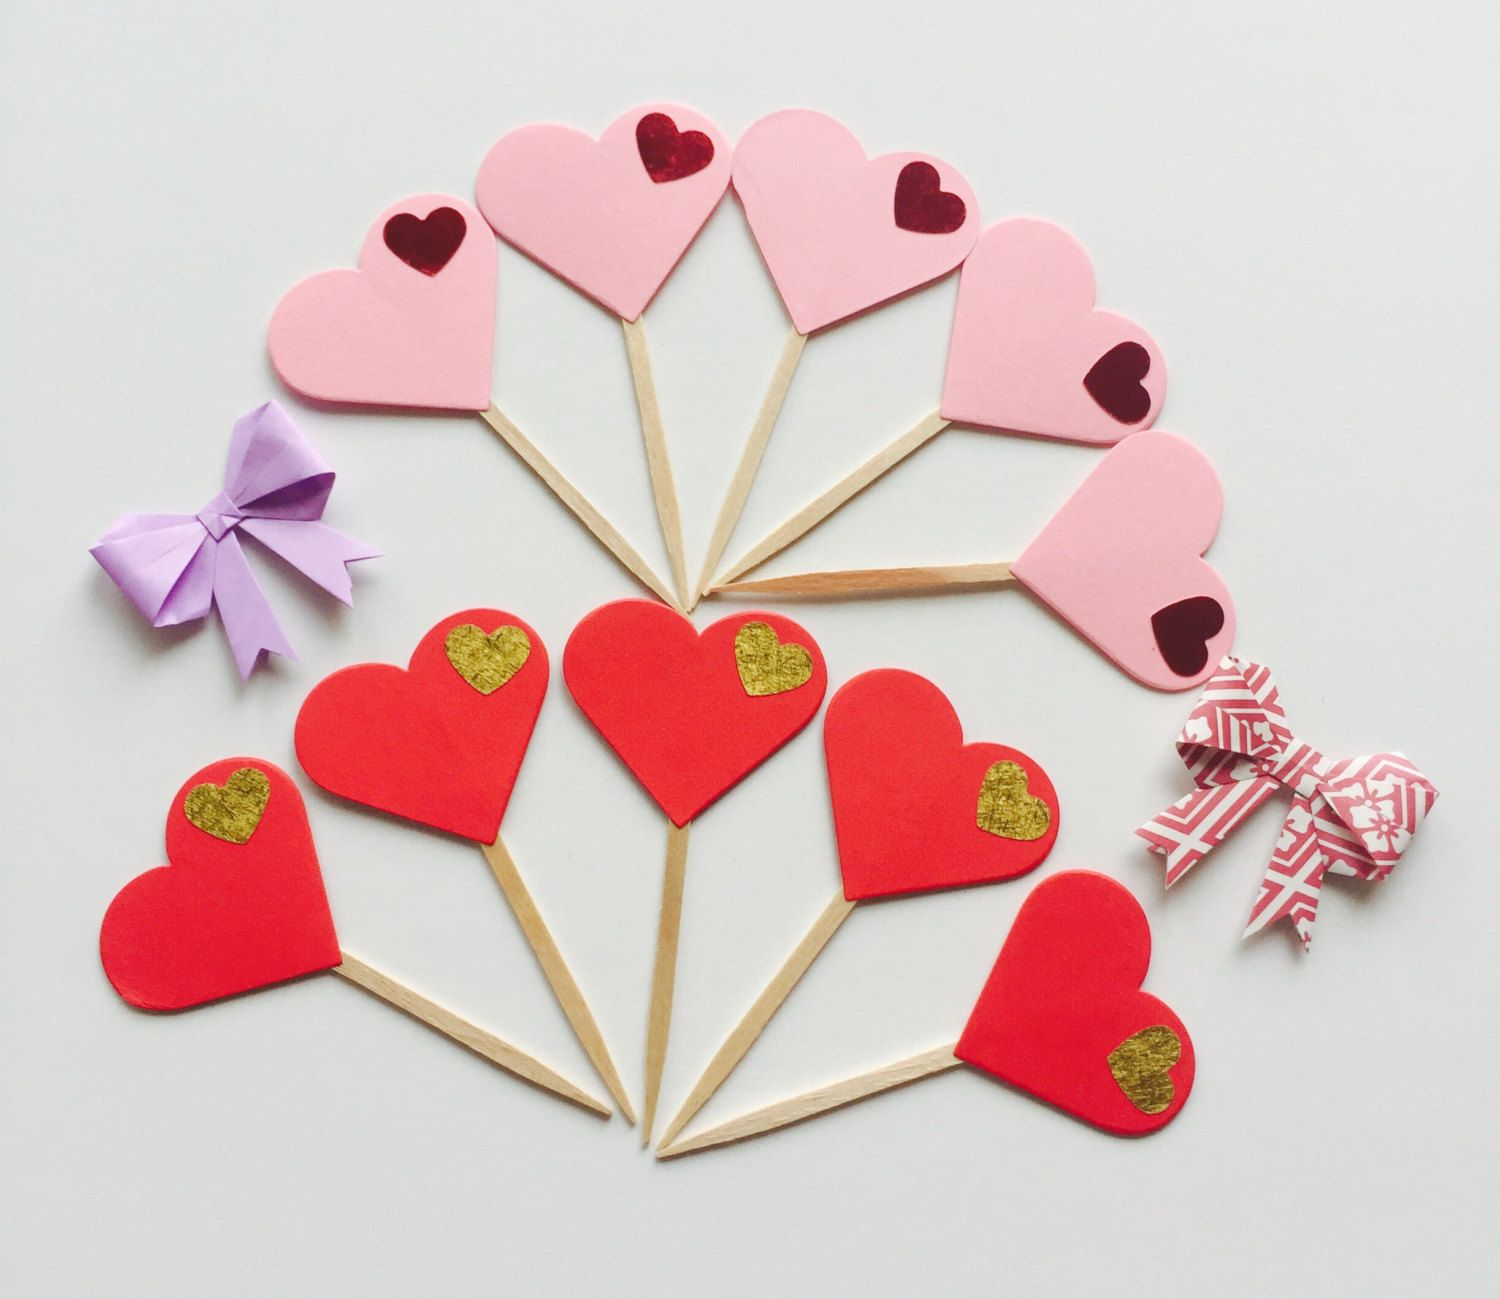 Pink And Red Heart Cake Toppers Cupcake Toppers Valentine S Day Set Of 10 By Hellacrafty415 On Etsy Heart Cake Topper Cupcake Toppers Cake Toppers